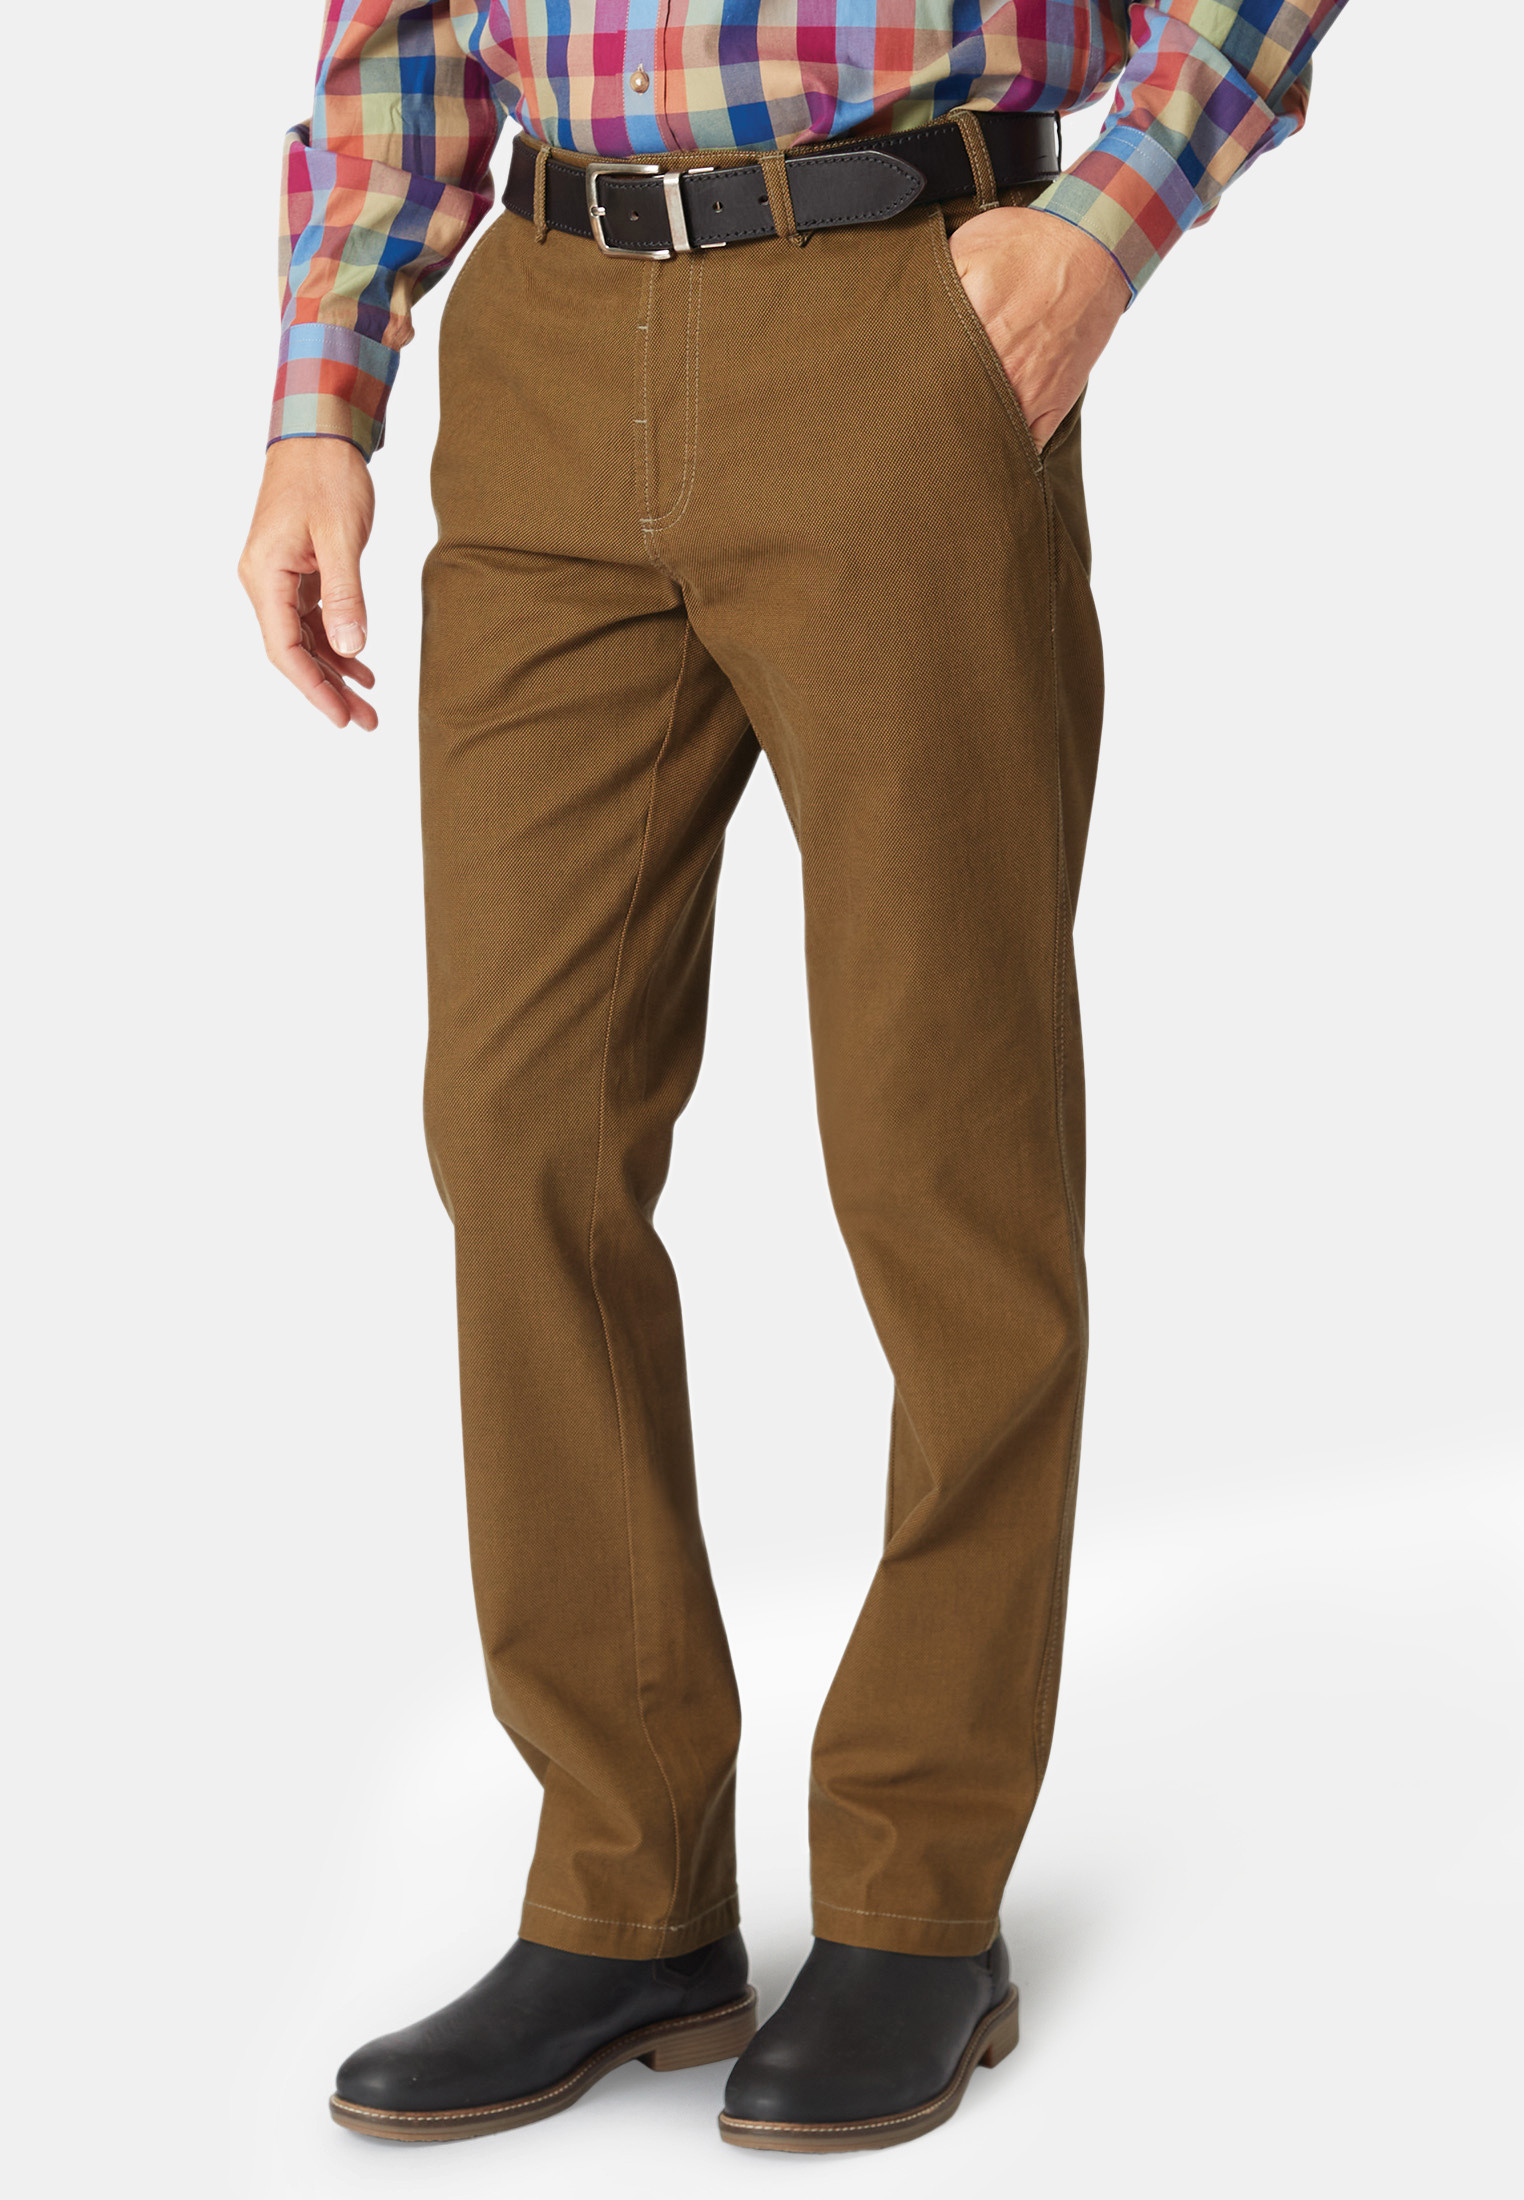 Havers Amber Micro Dot Casual Trouser